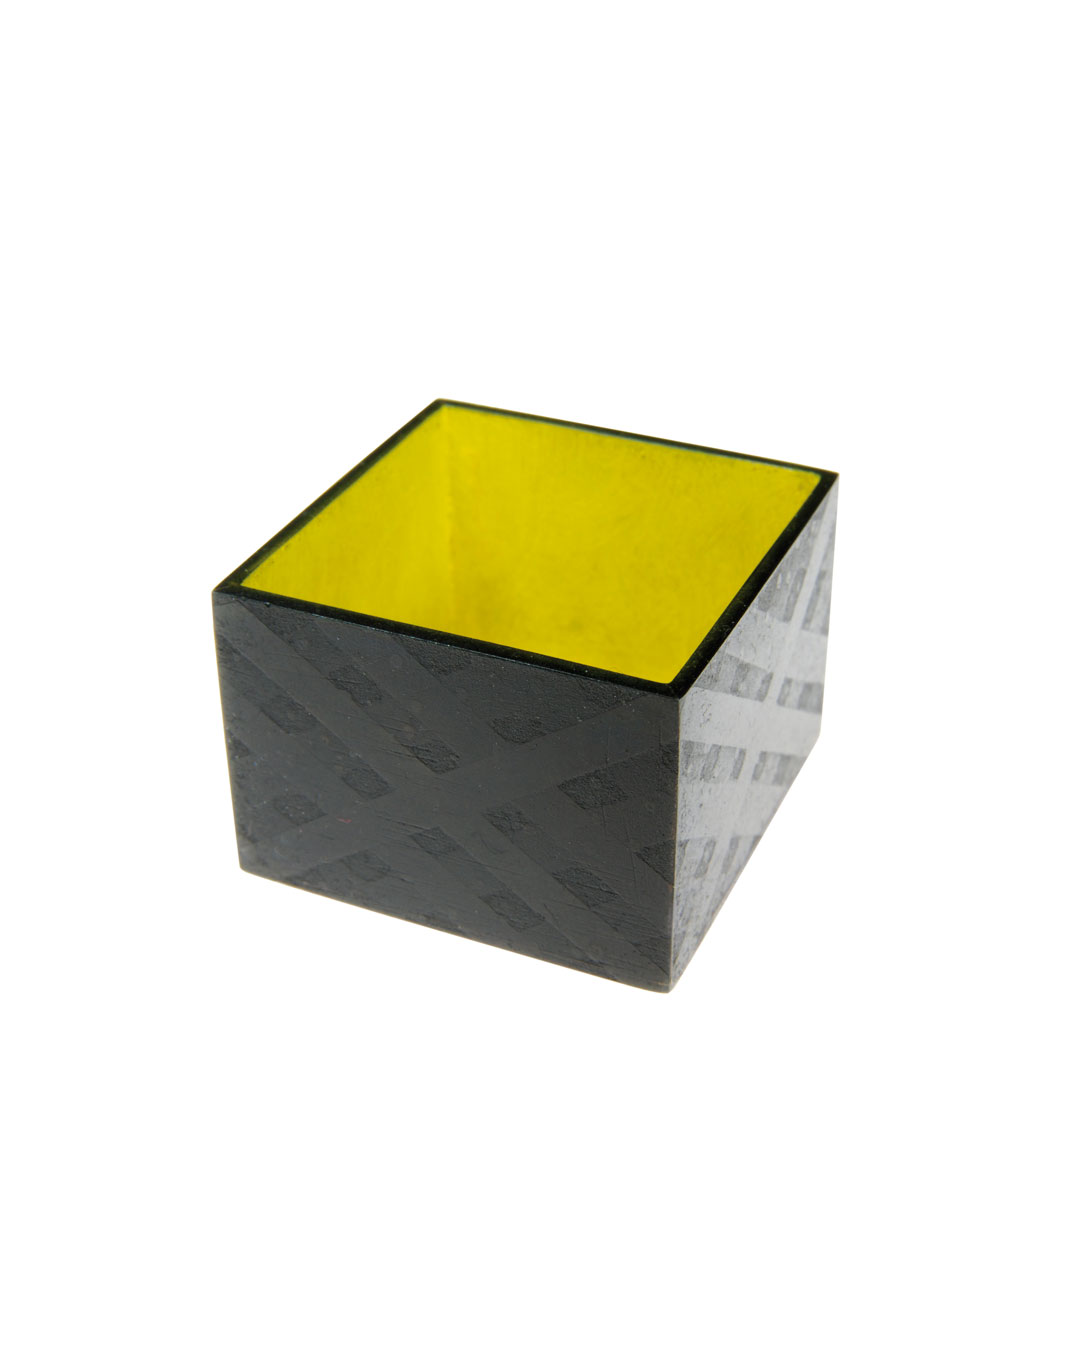 Tore Svensson, Box, 2009, brooch; etched and painted steel, 30 x 30 x 20 mm, €560